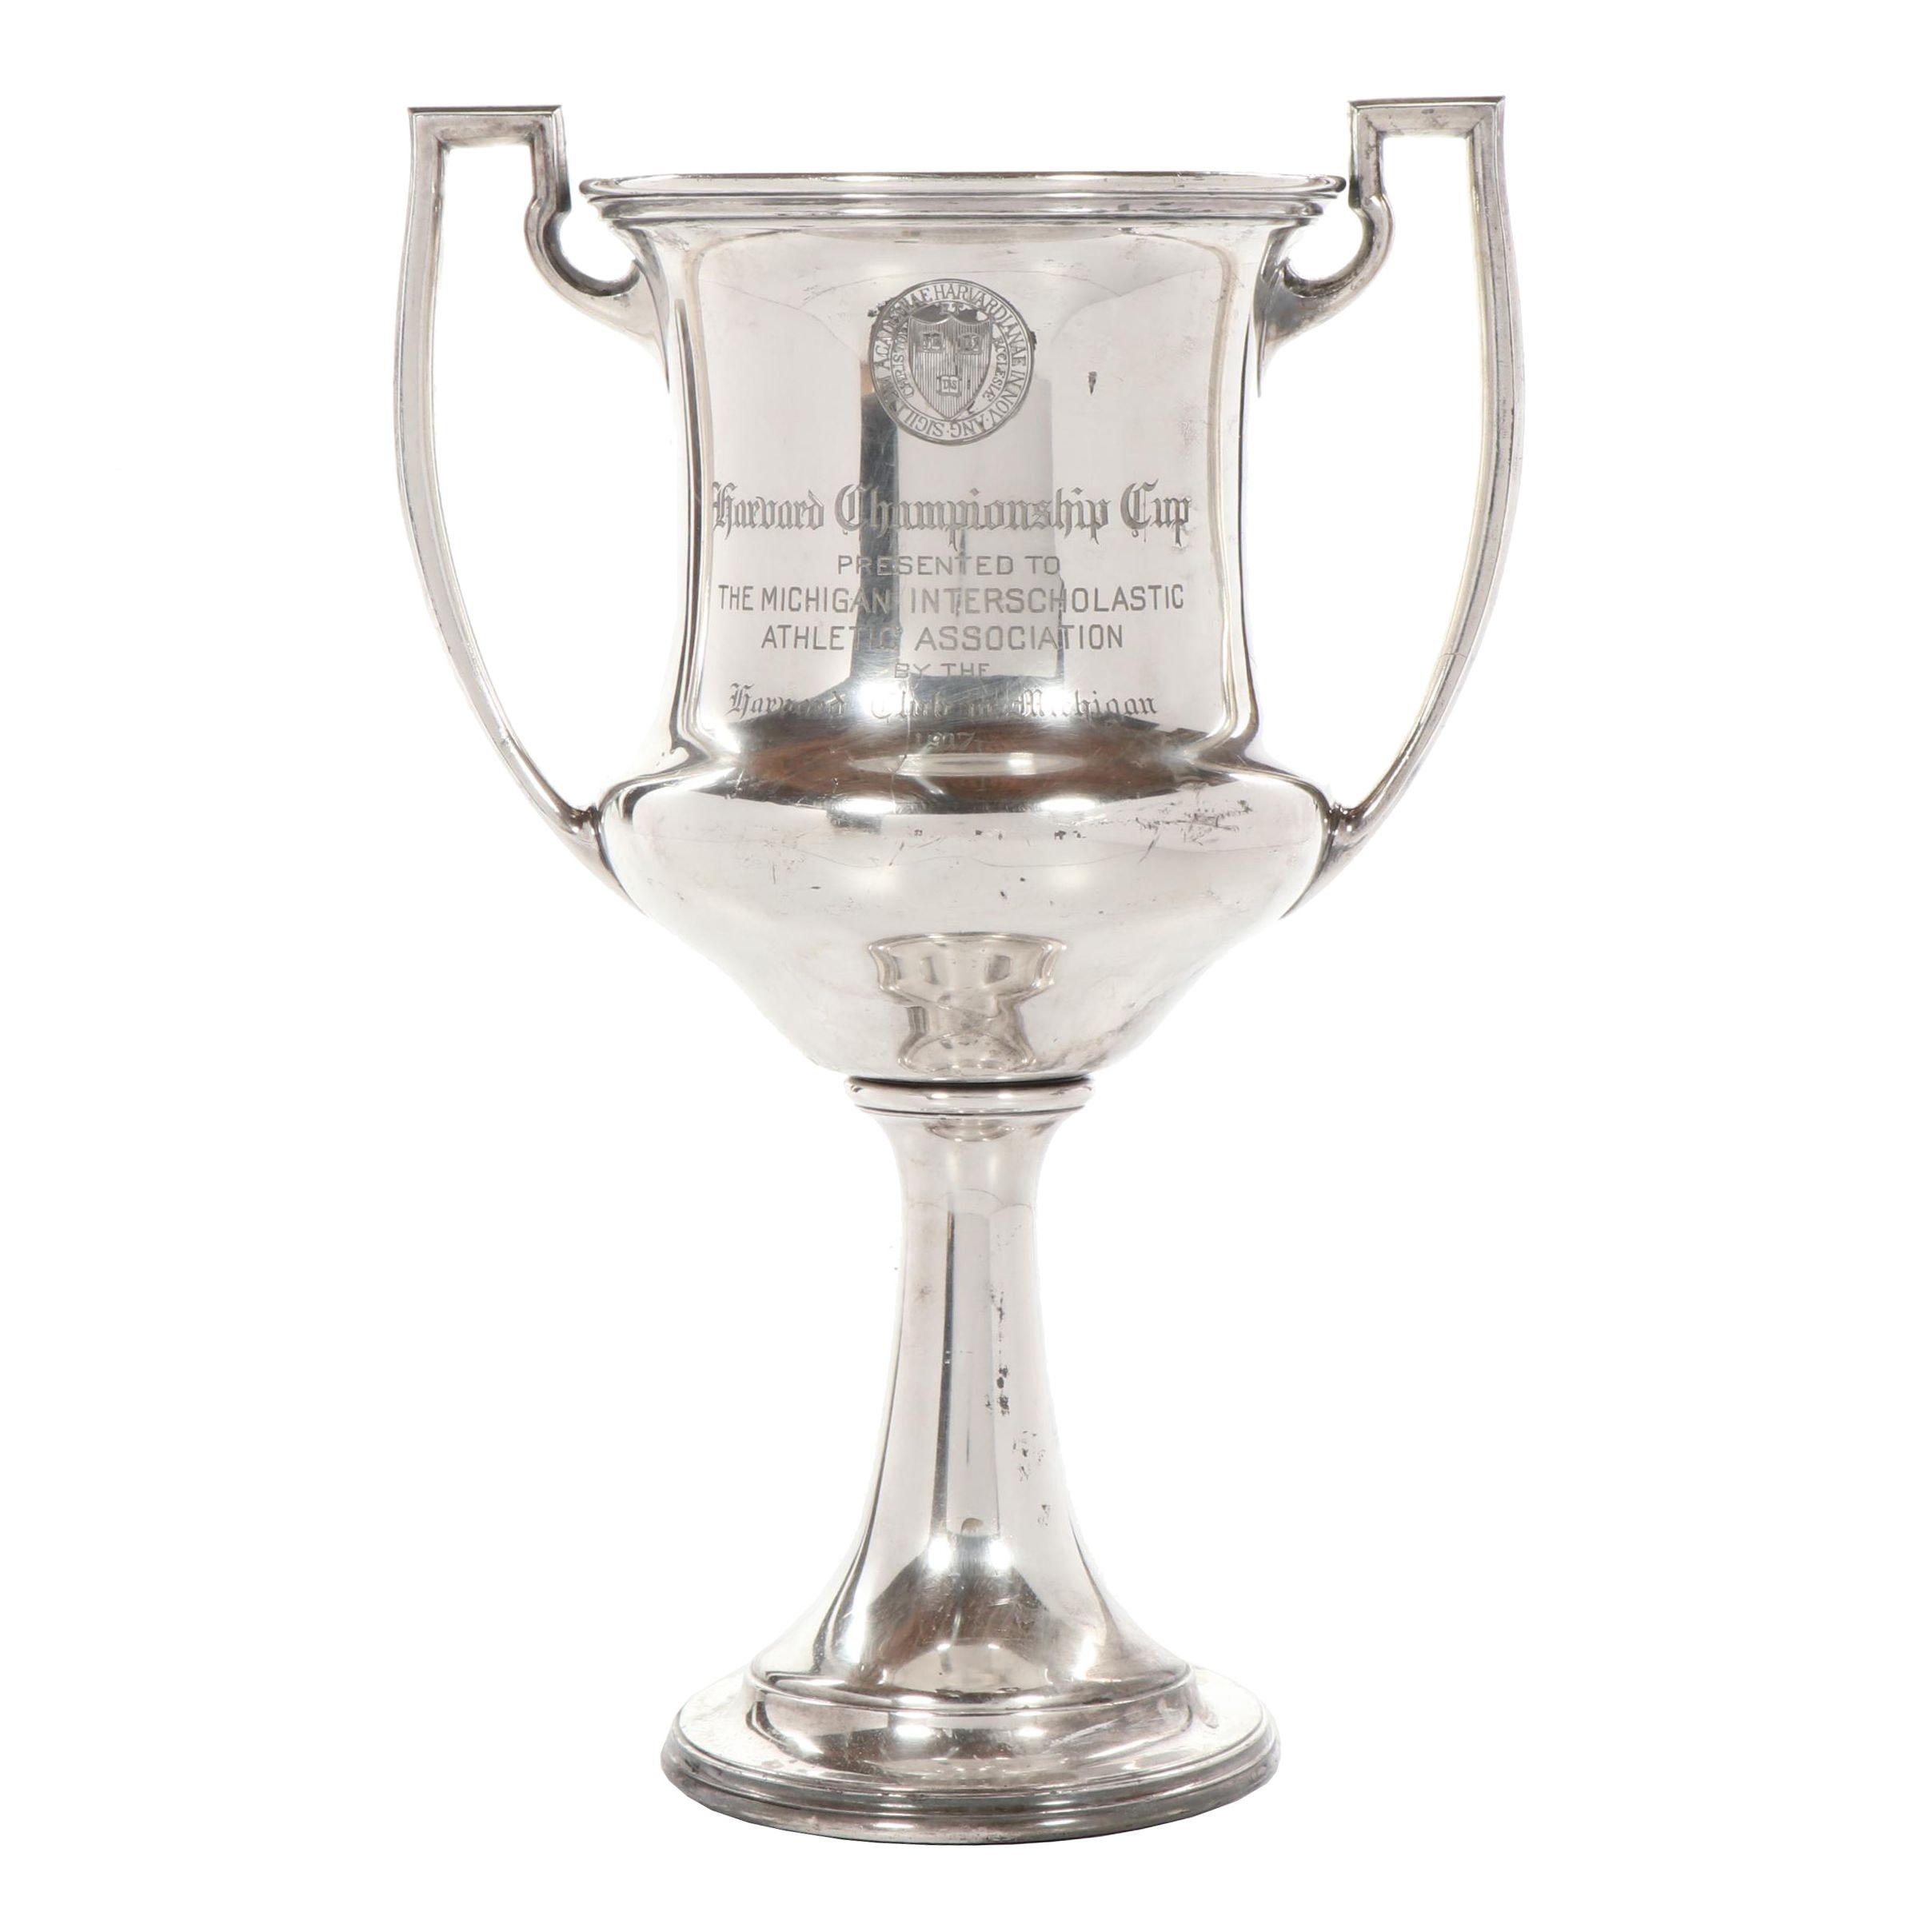 Harvard Club of Michigan Silver Plate Trophy Cup, Circa 1917